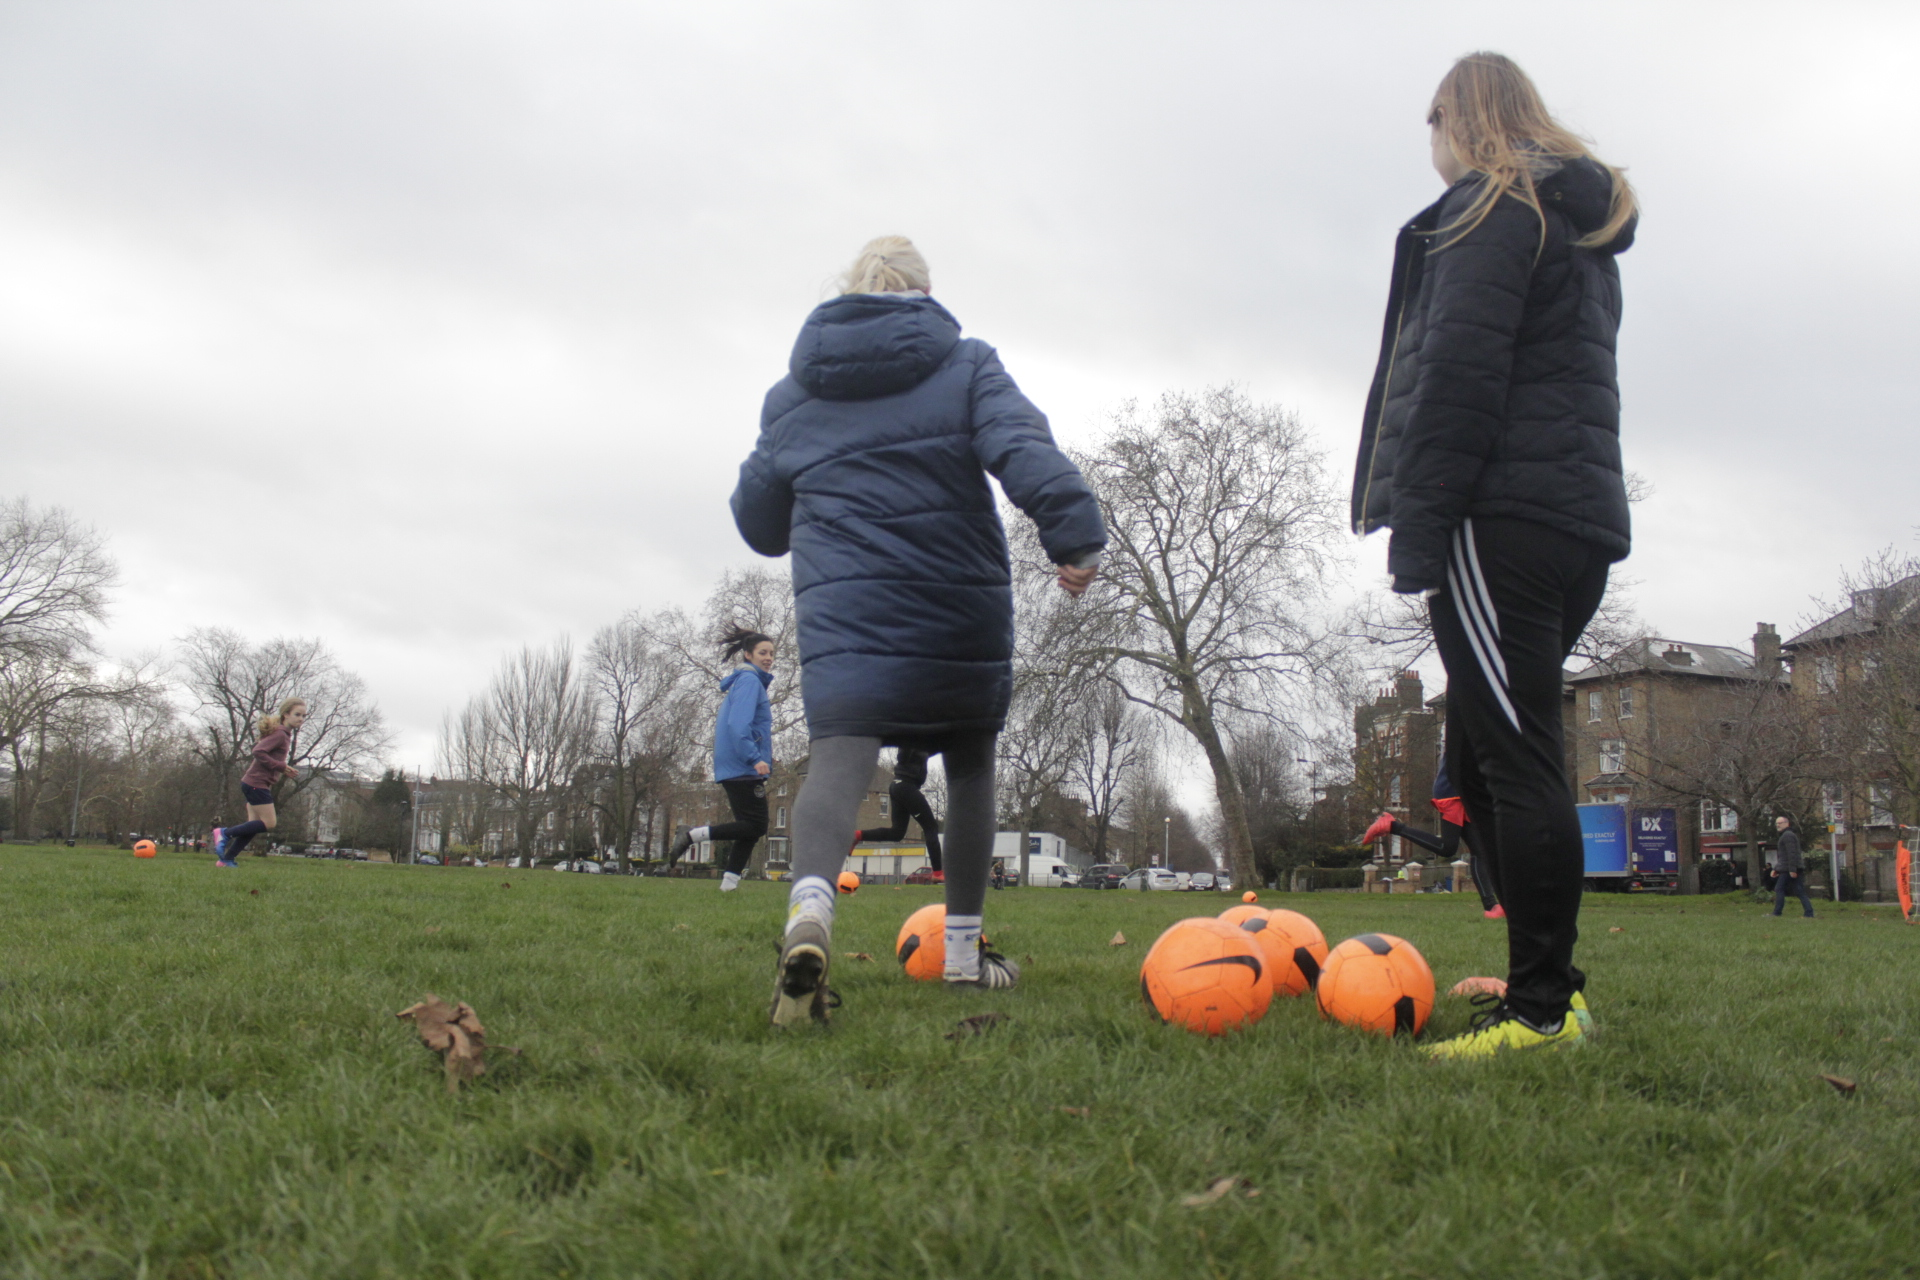 Our FA qualified and first aid trained coaches aim to develop all players within a safe learning space